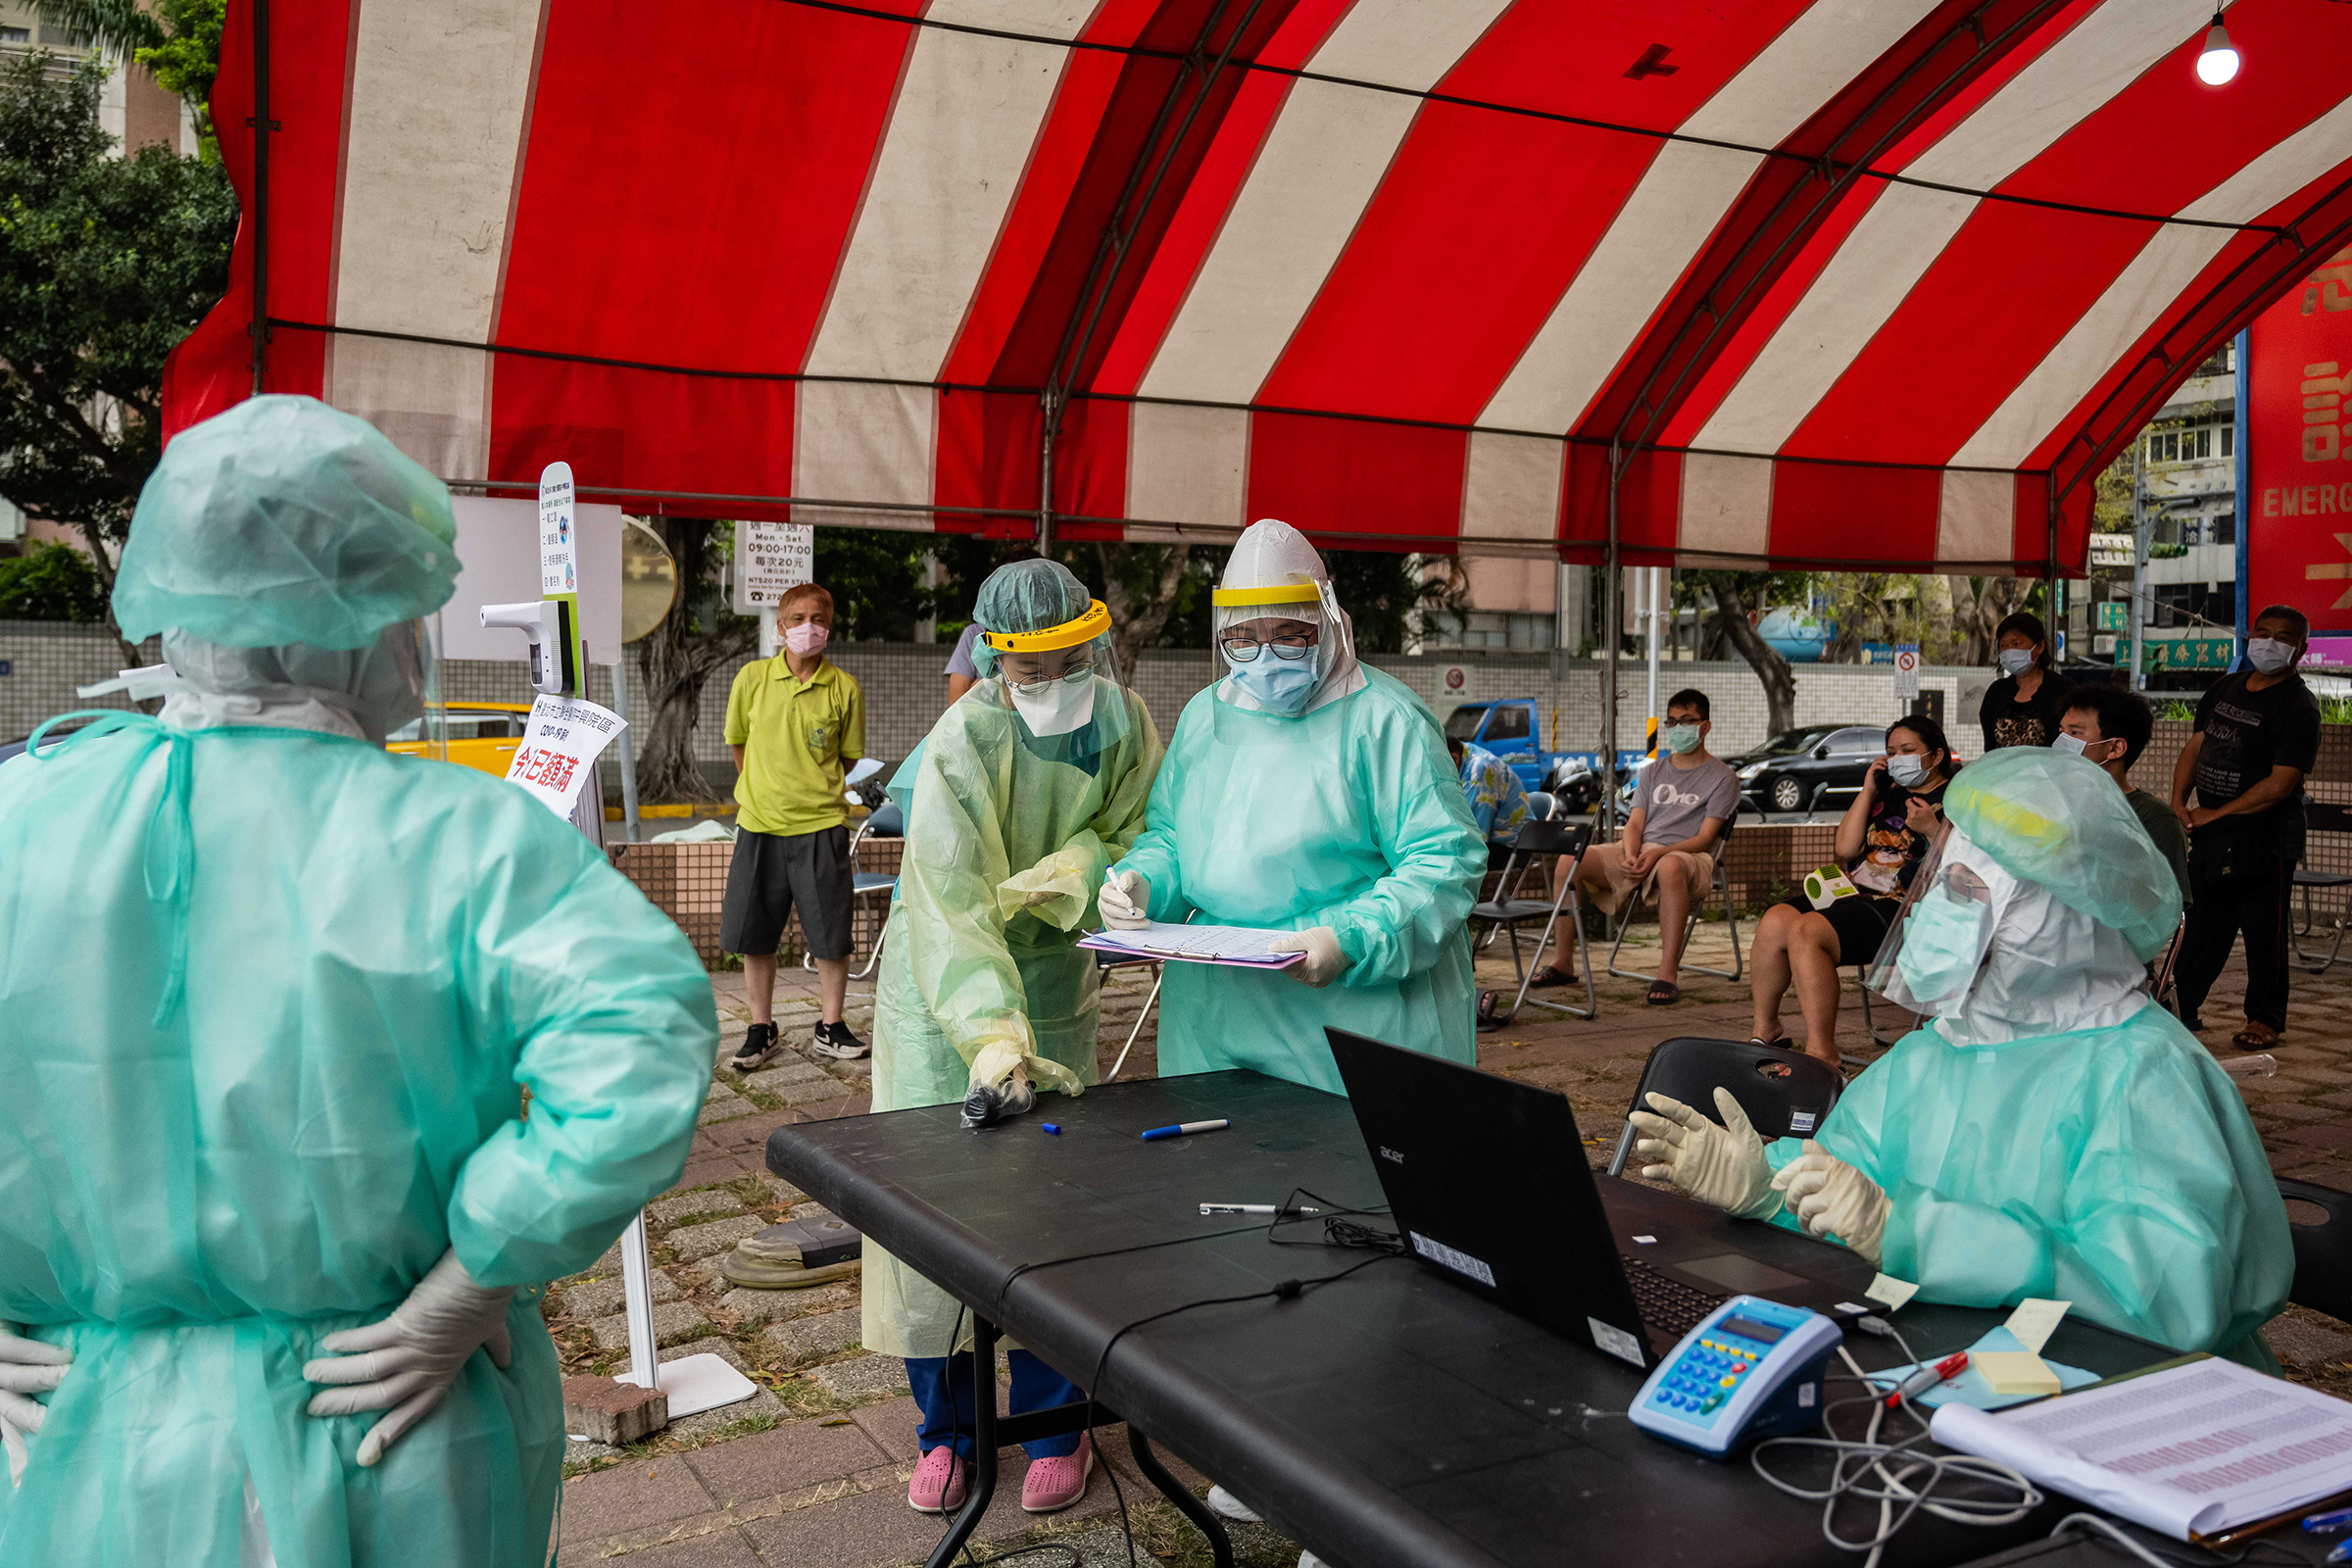 Health care workers at a temporary COVID-19 rapid testing site in Taipei on May 17, 2021.